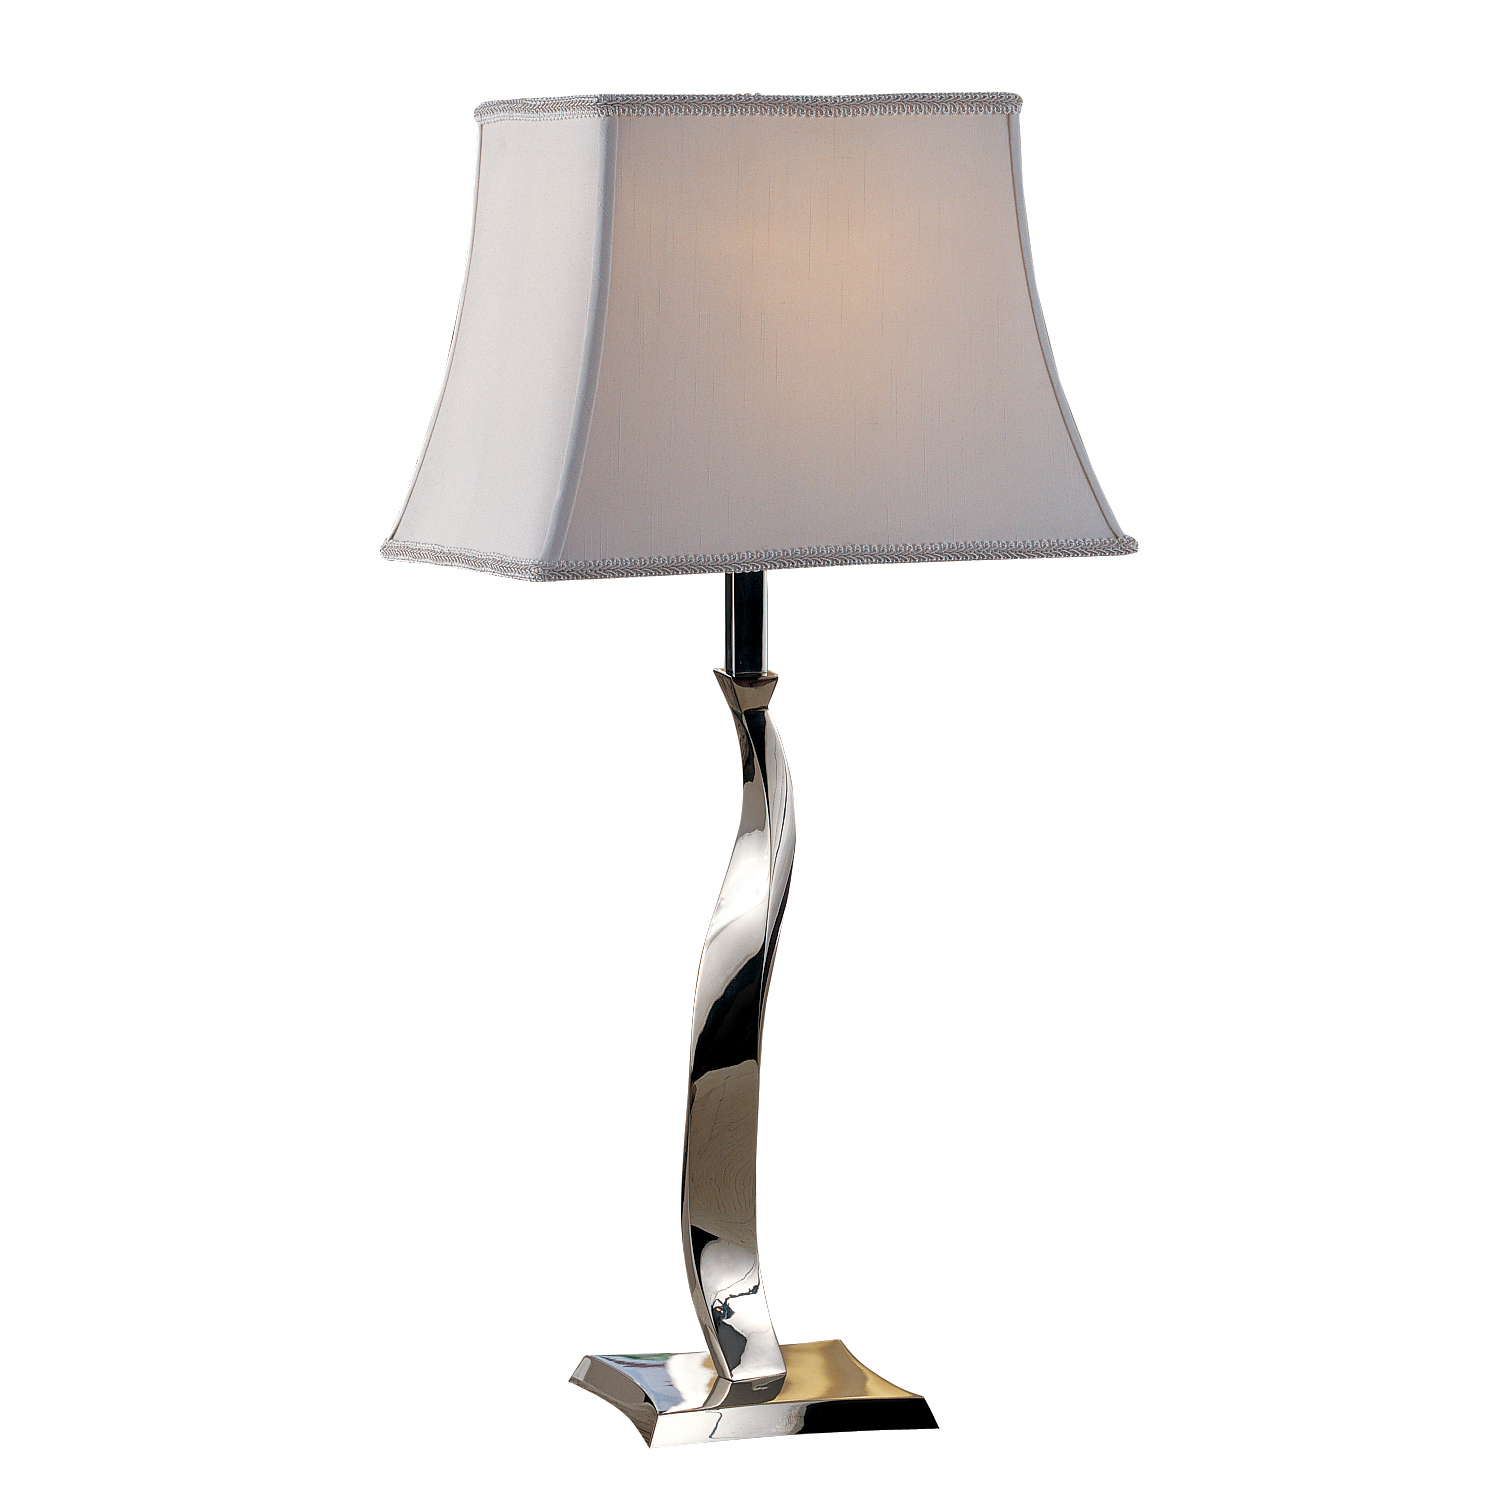 09t536 chrome twist table lamp welcome home accents aloadofball Choice Image